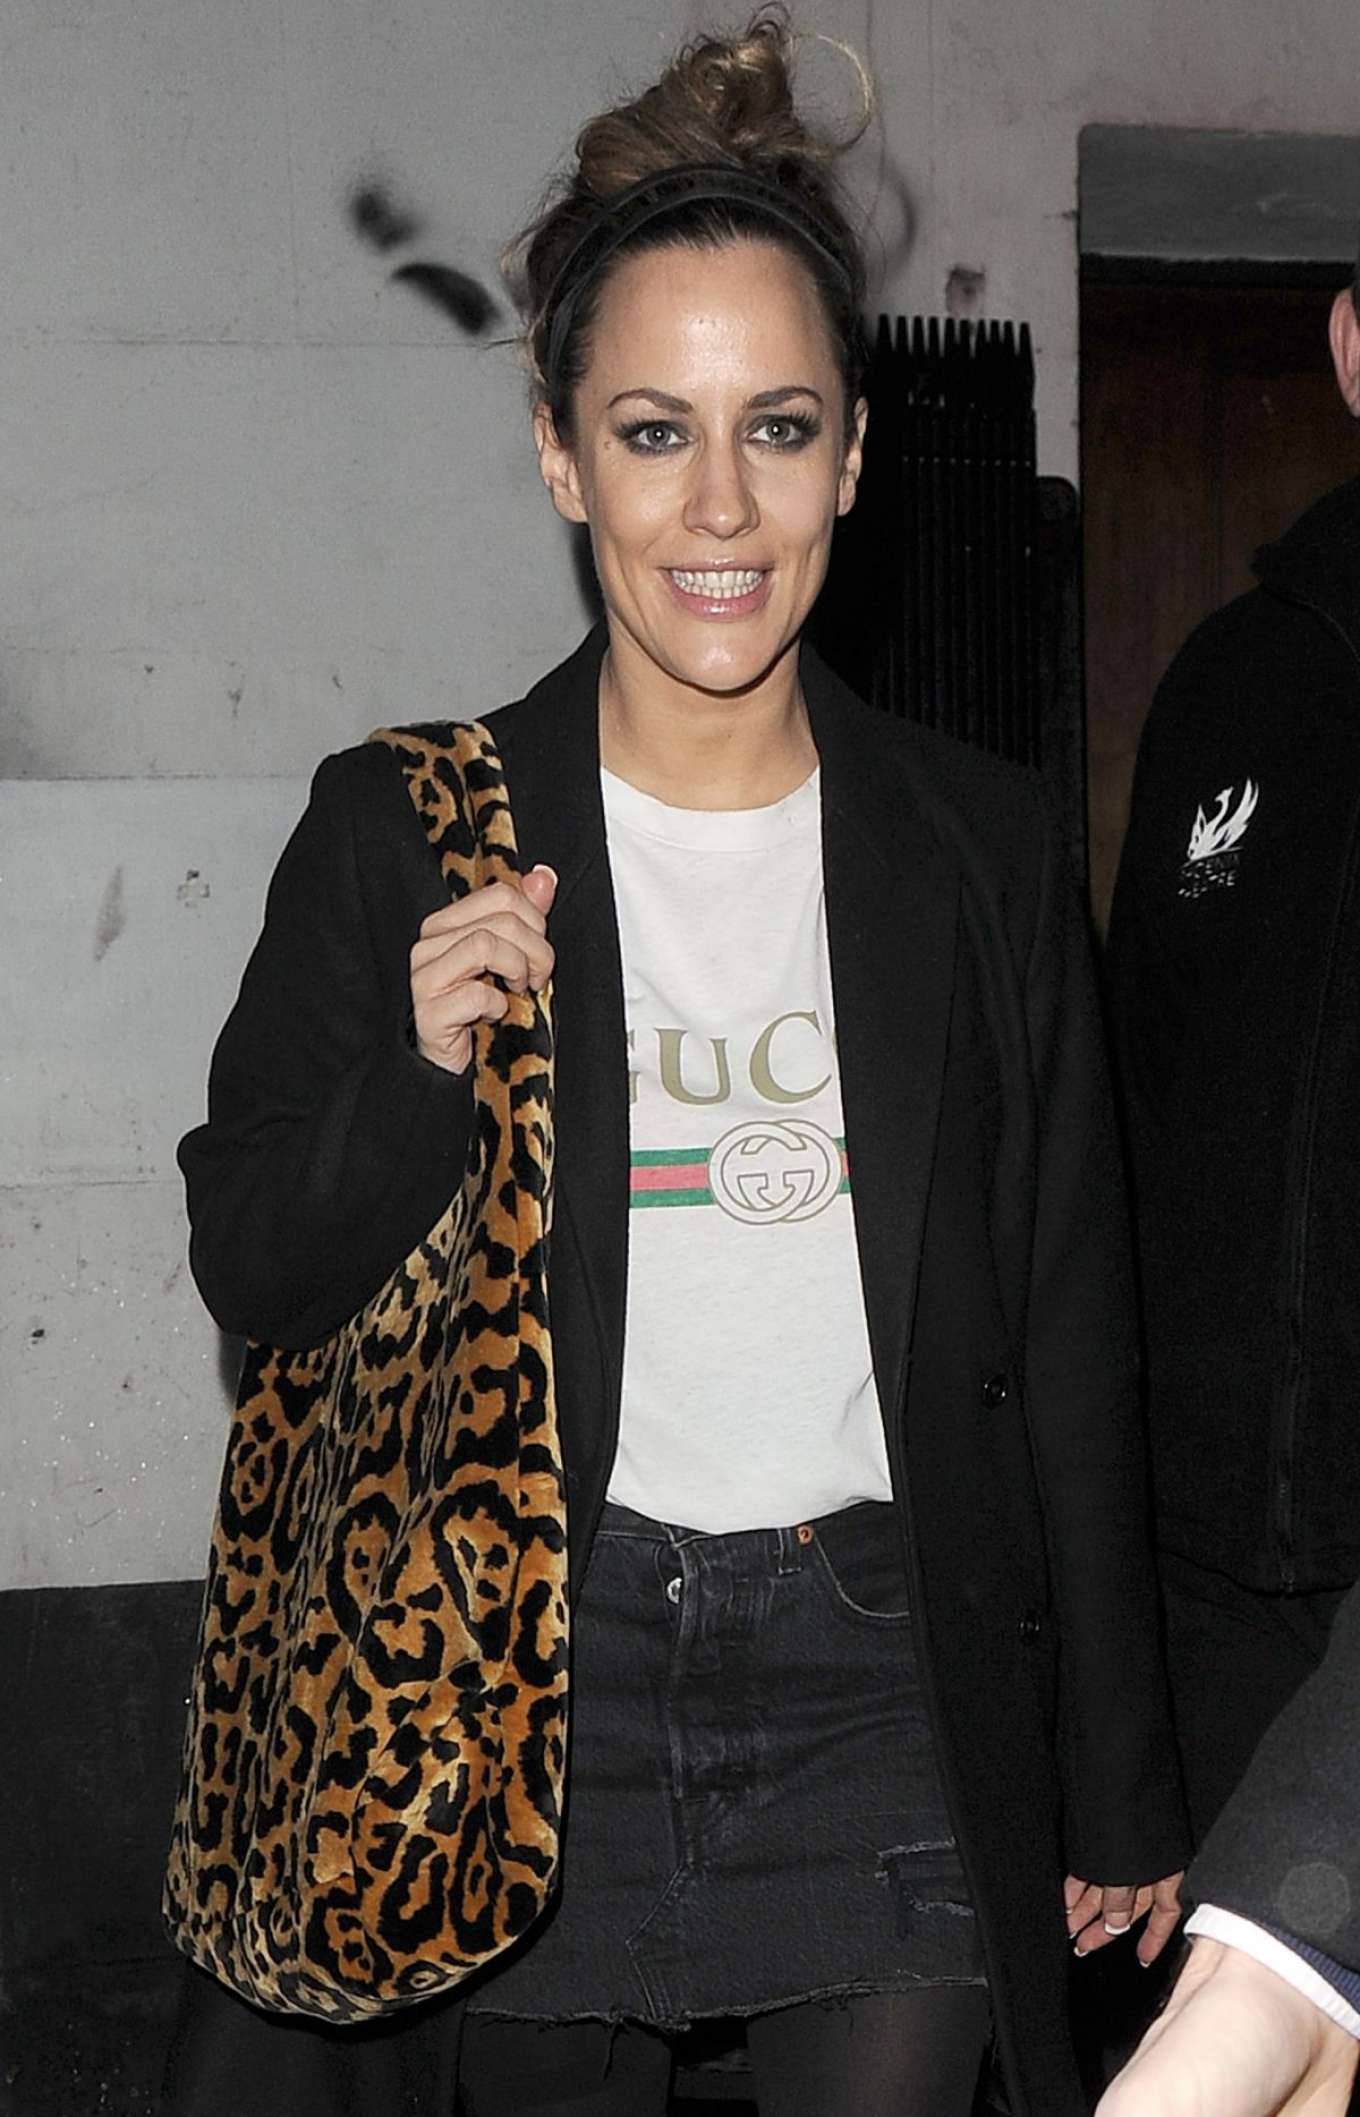 Croline Flack - Leaves 'Chicago' The Musical in London